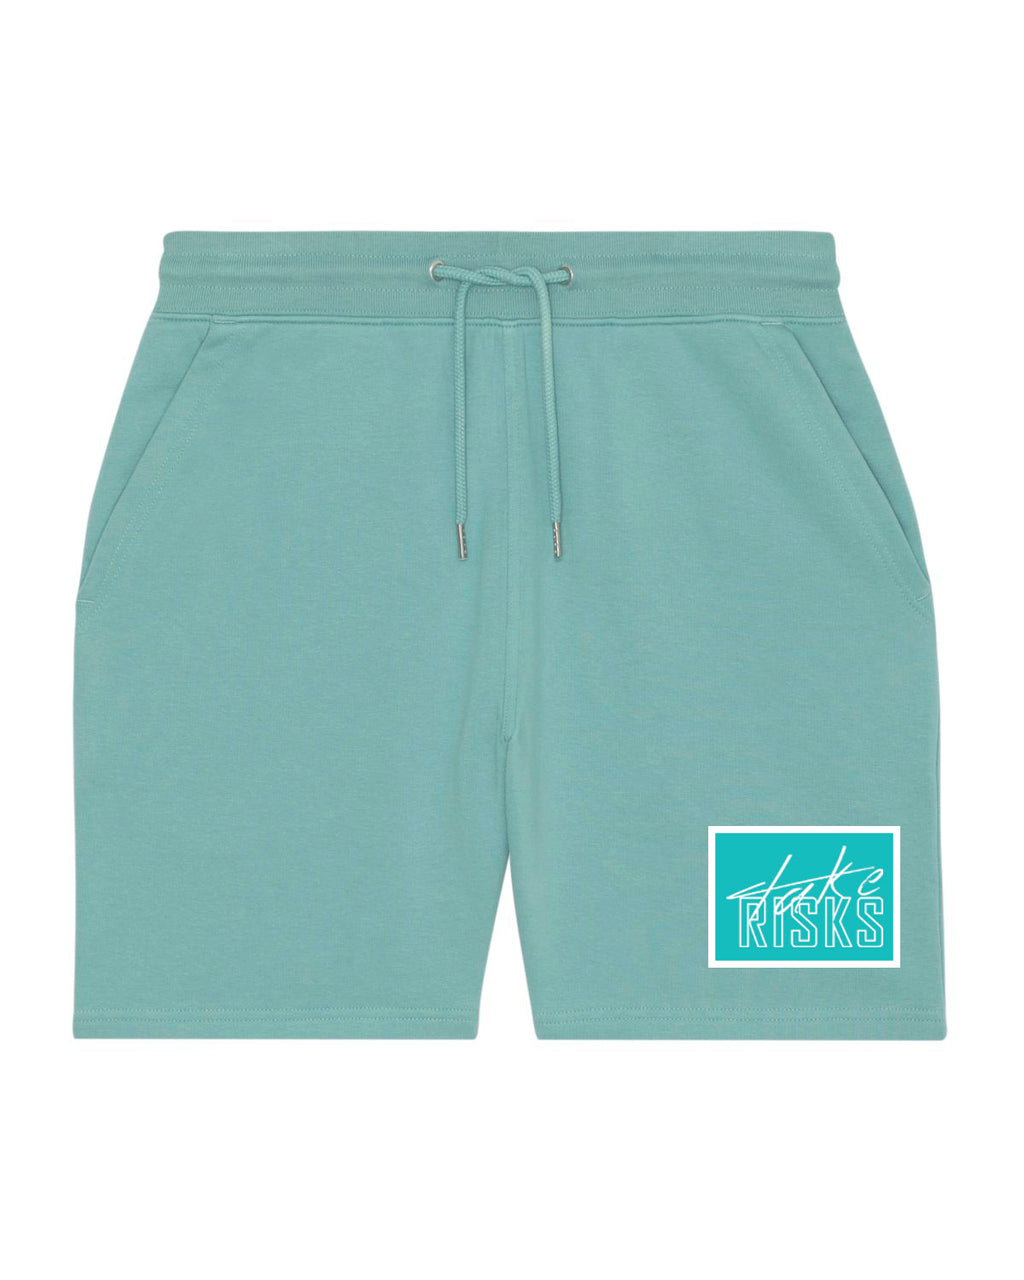 Take Risks Turq Patch Shorts